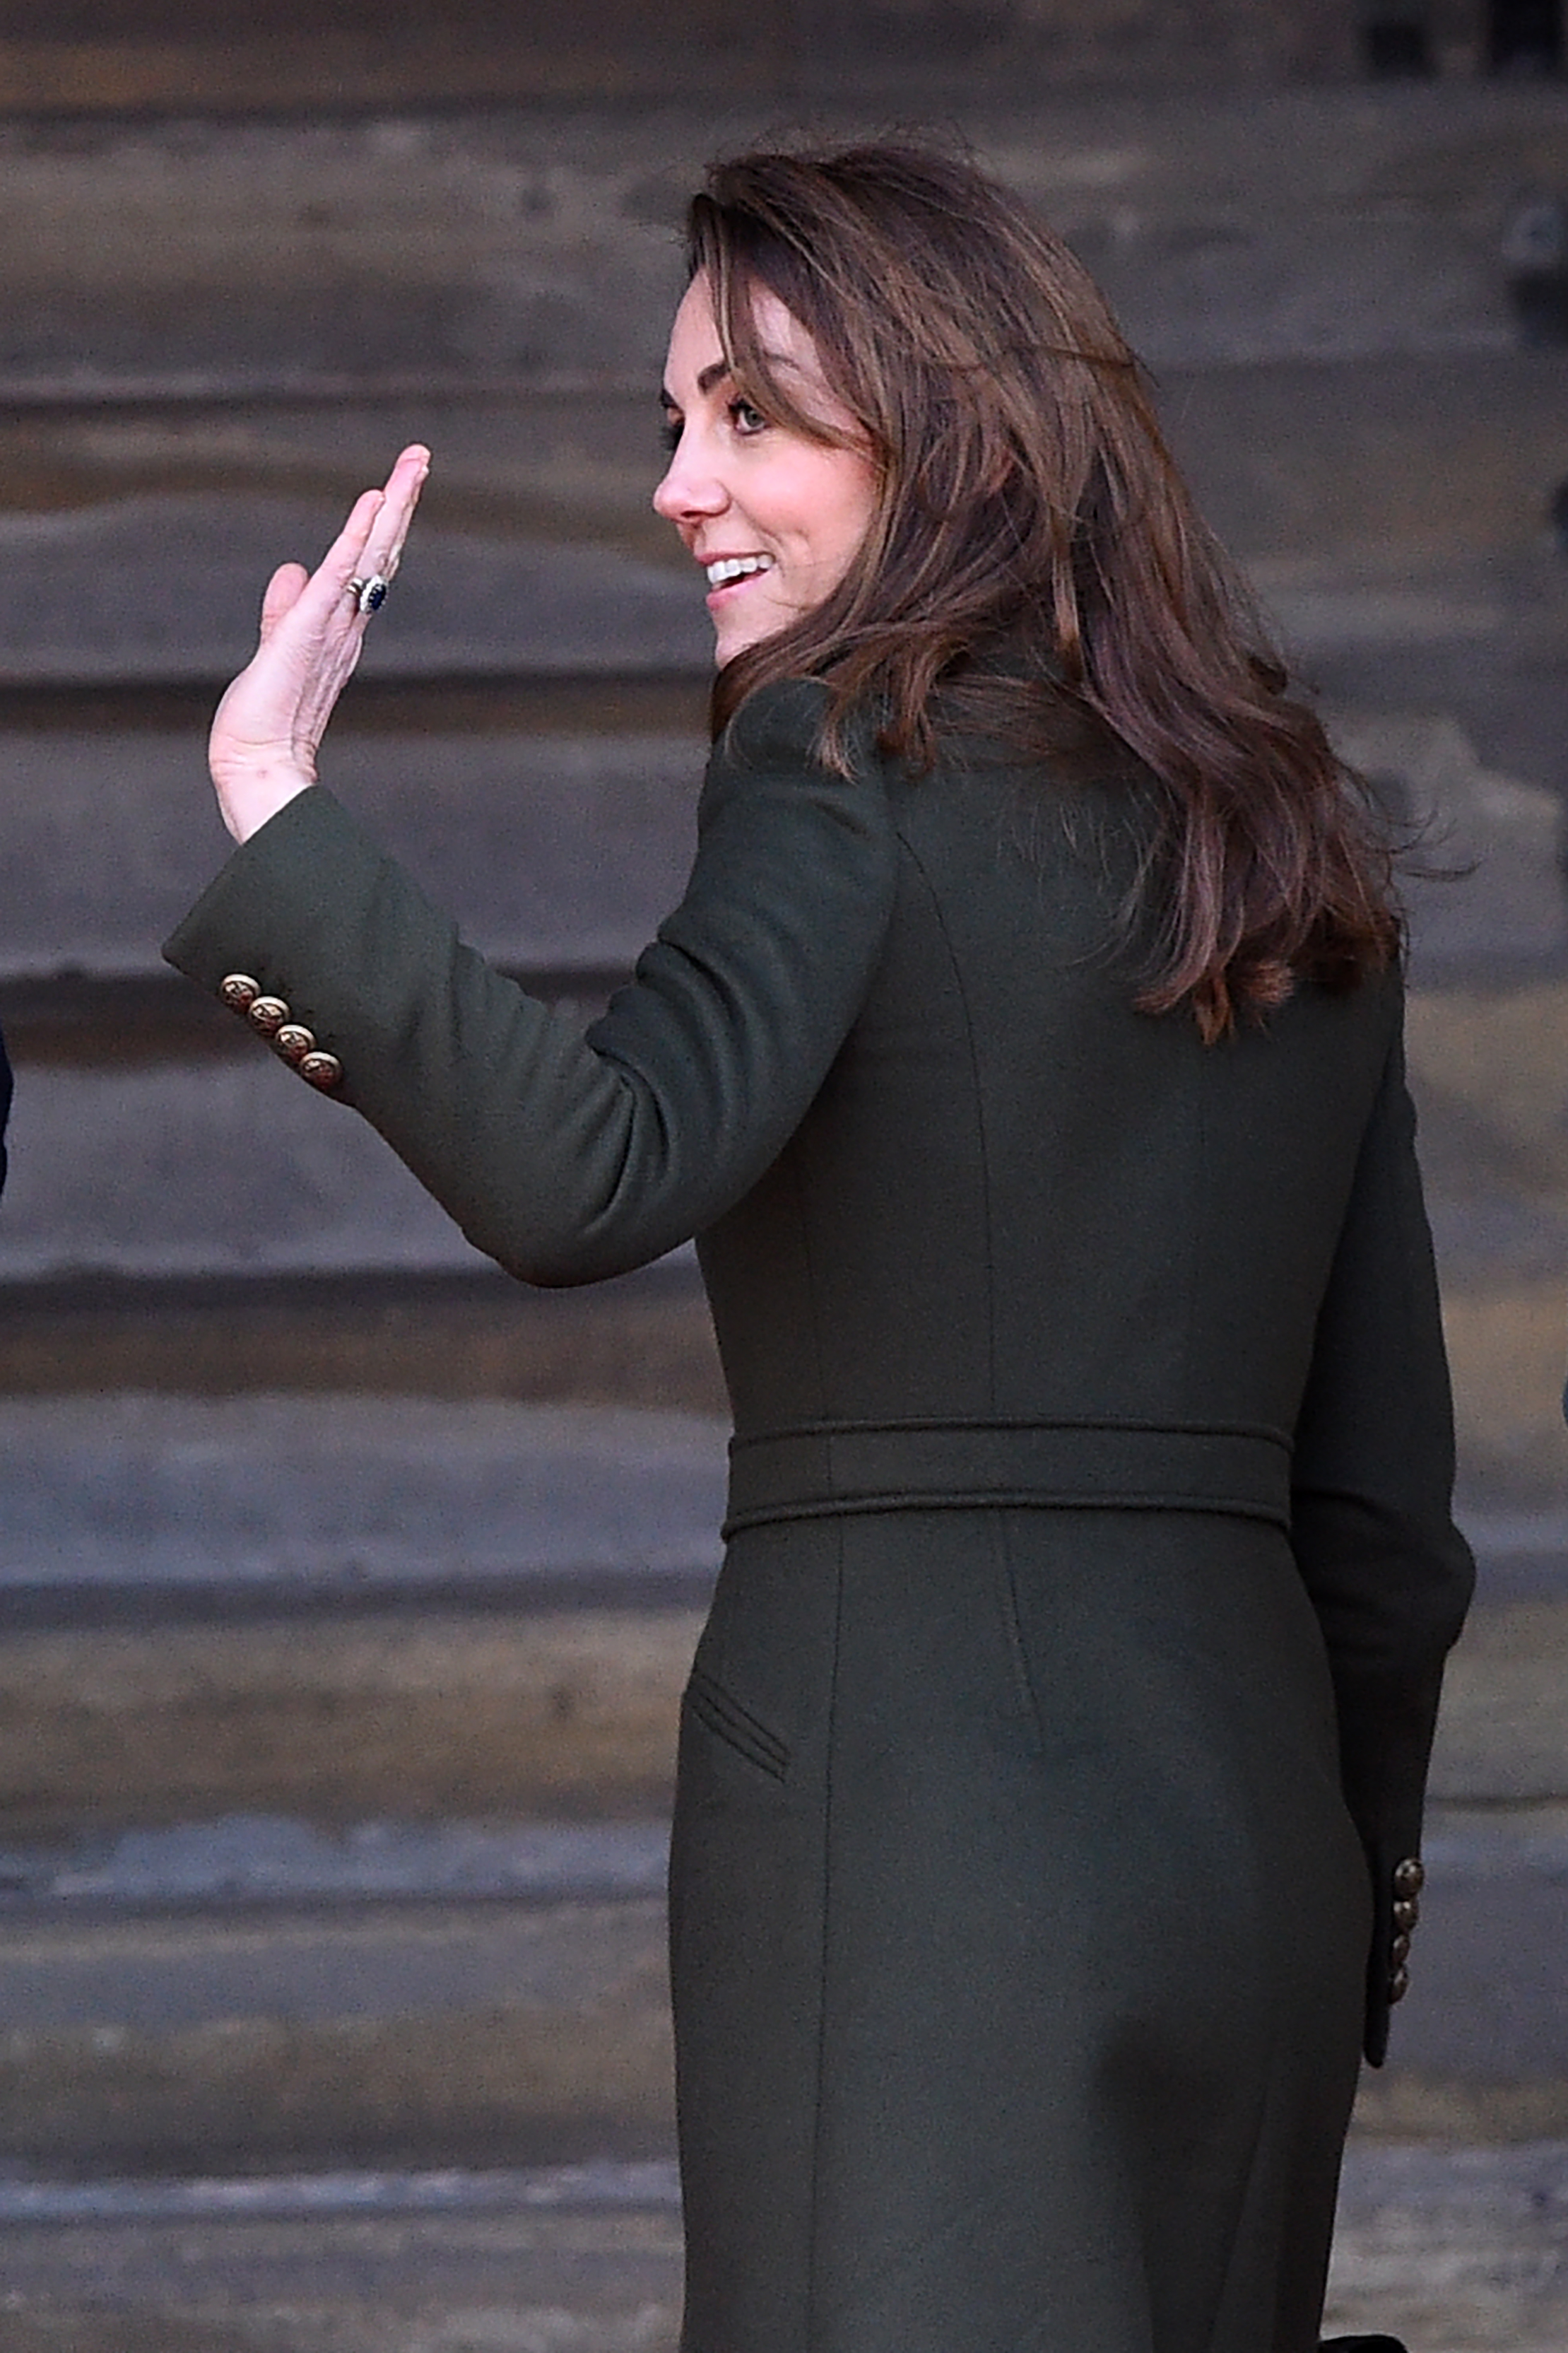 Britain's Catherine, Duchess of Cambridge gestures on arrival for a visit to City Hall in Centenary Square, Bradford on January 15, 2020, to meet young people and hear about their life in Bradford. (Photo by Oli SCARFF / AFP) (Photo by OLI SCARFF/AFP via Getty Images)